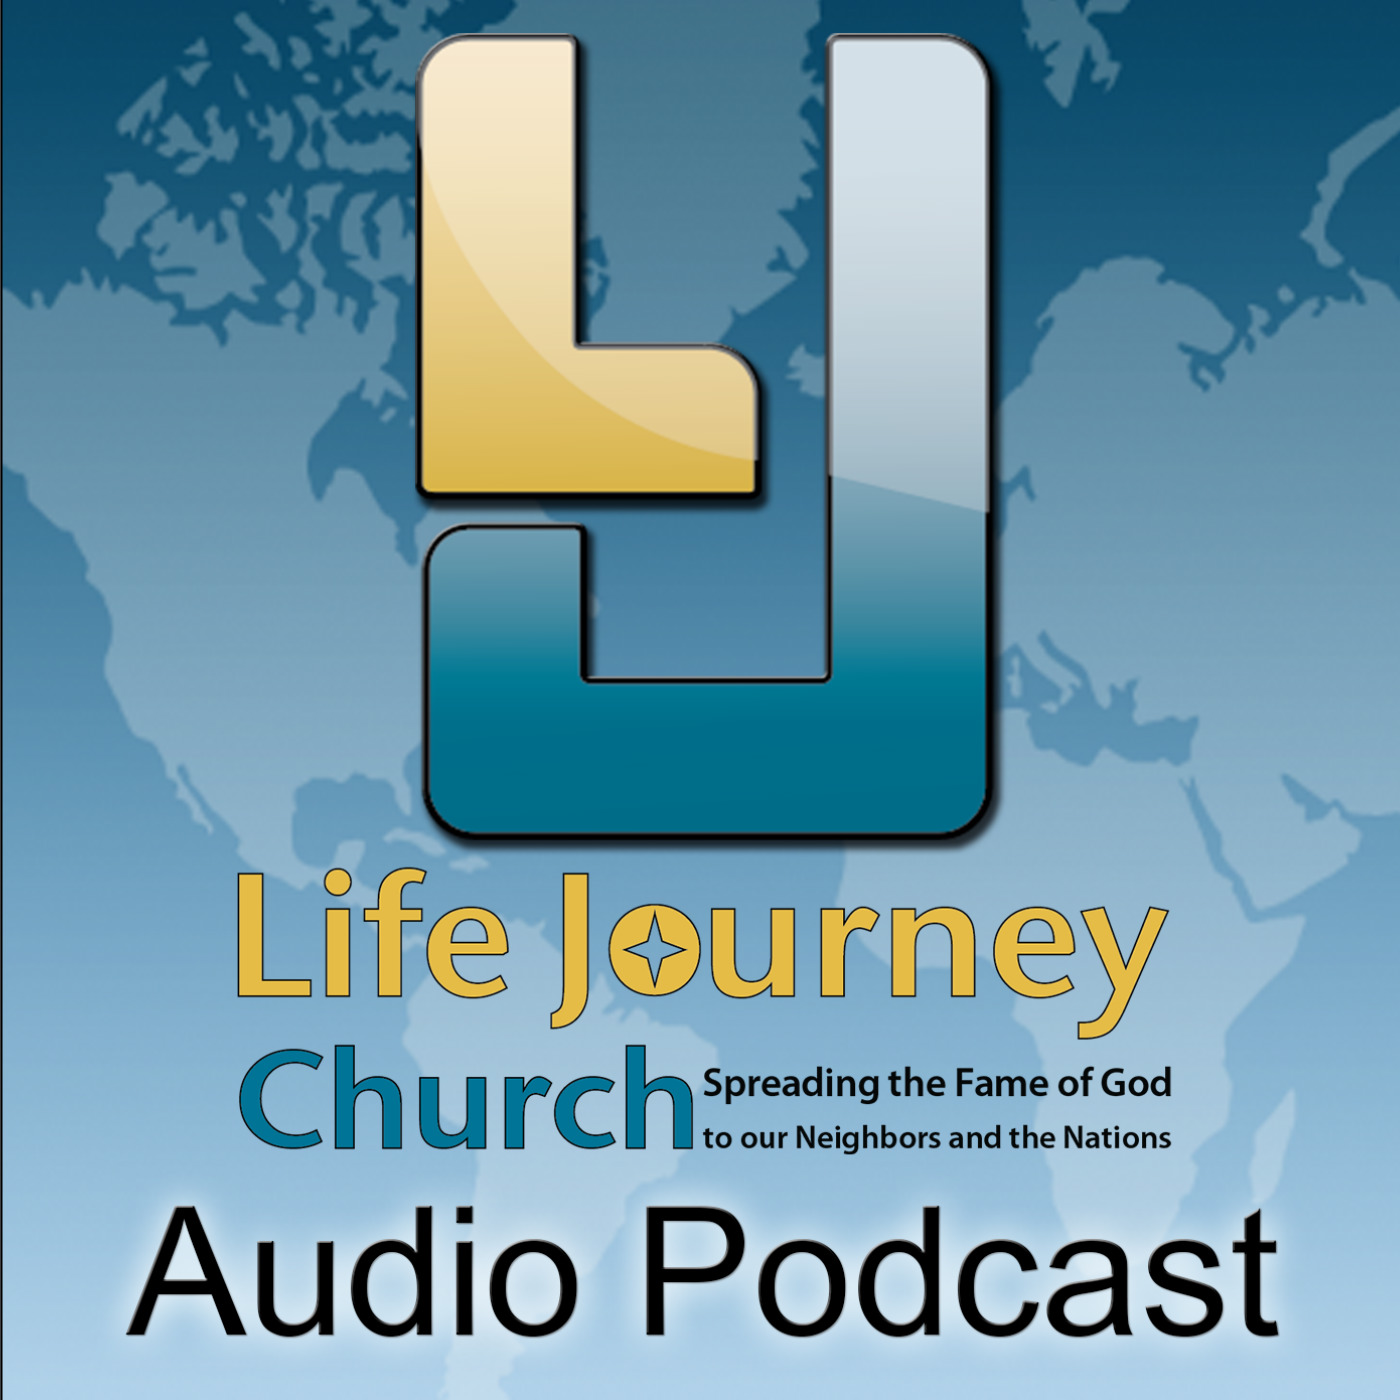 Life Journey Church Podcast